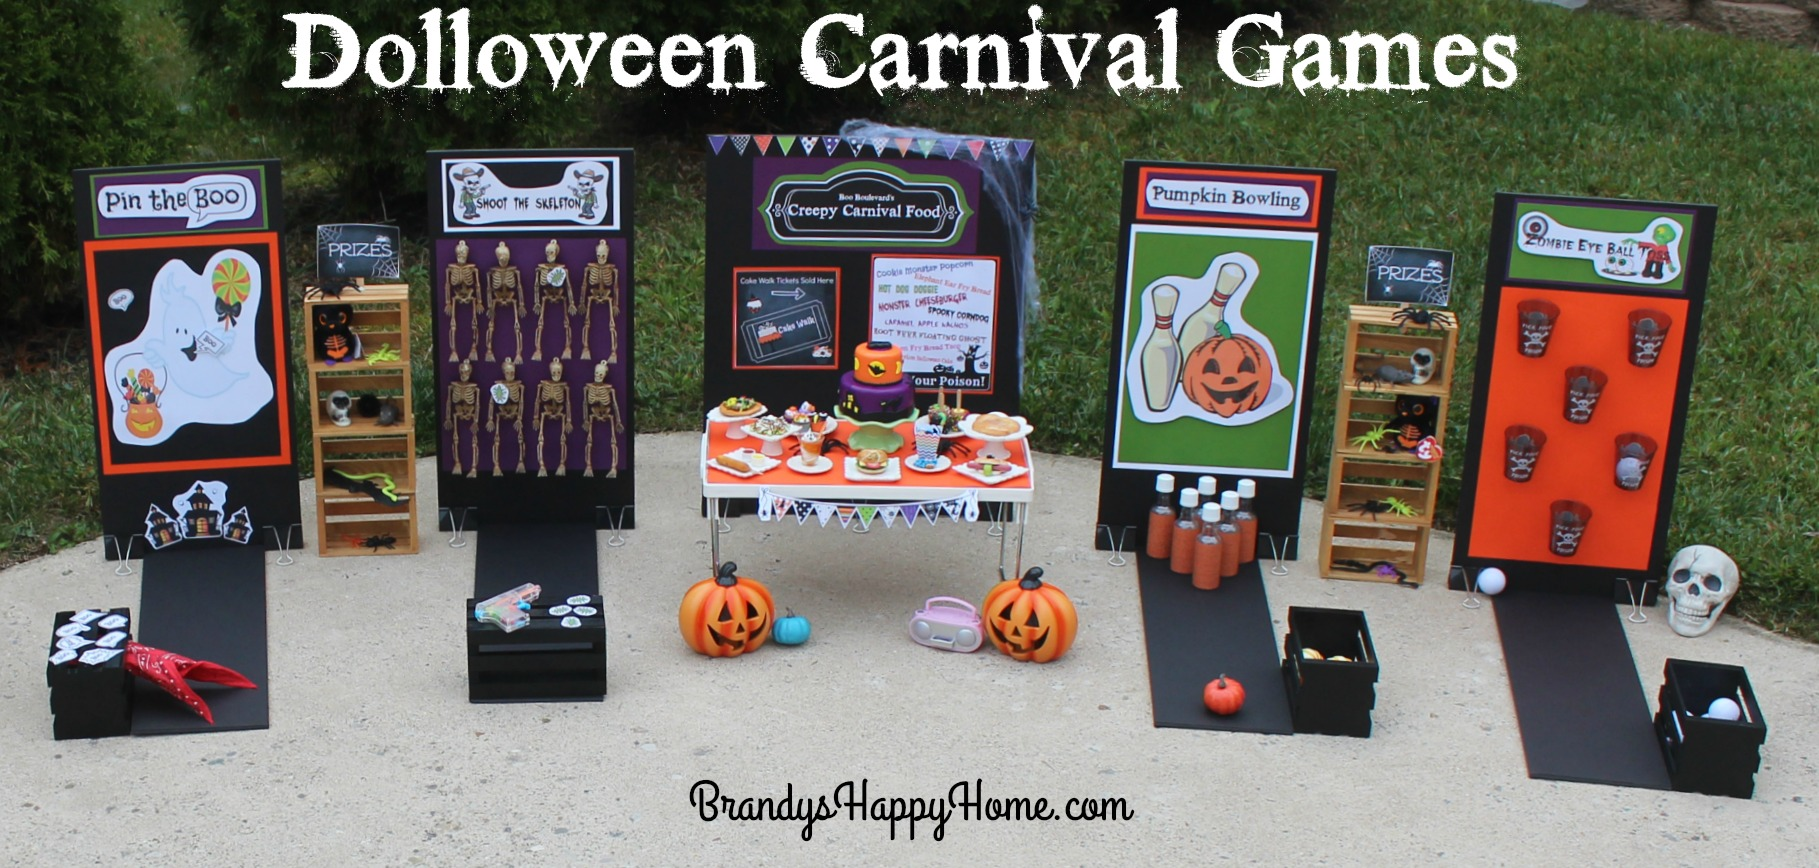 Kitchen Apples Home Decor Dolloween Carnival Part 2 Carnival Games